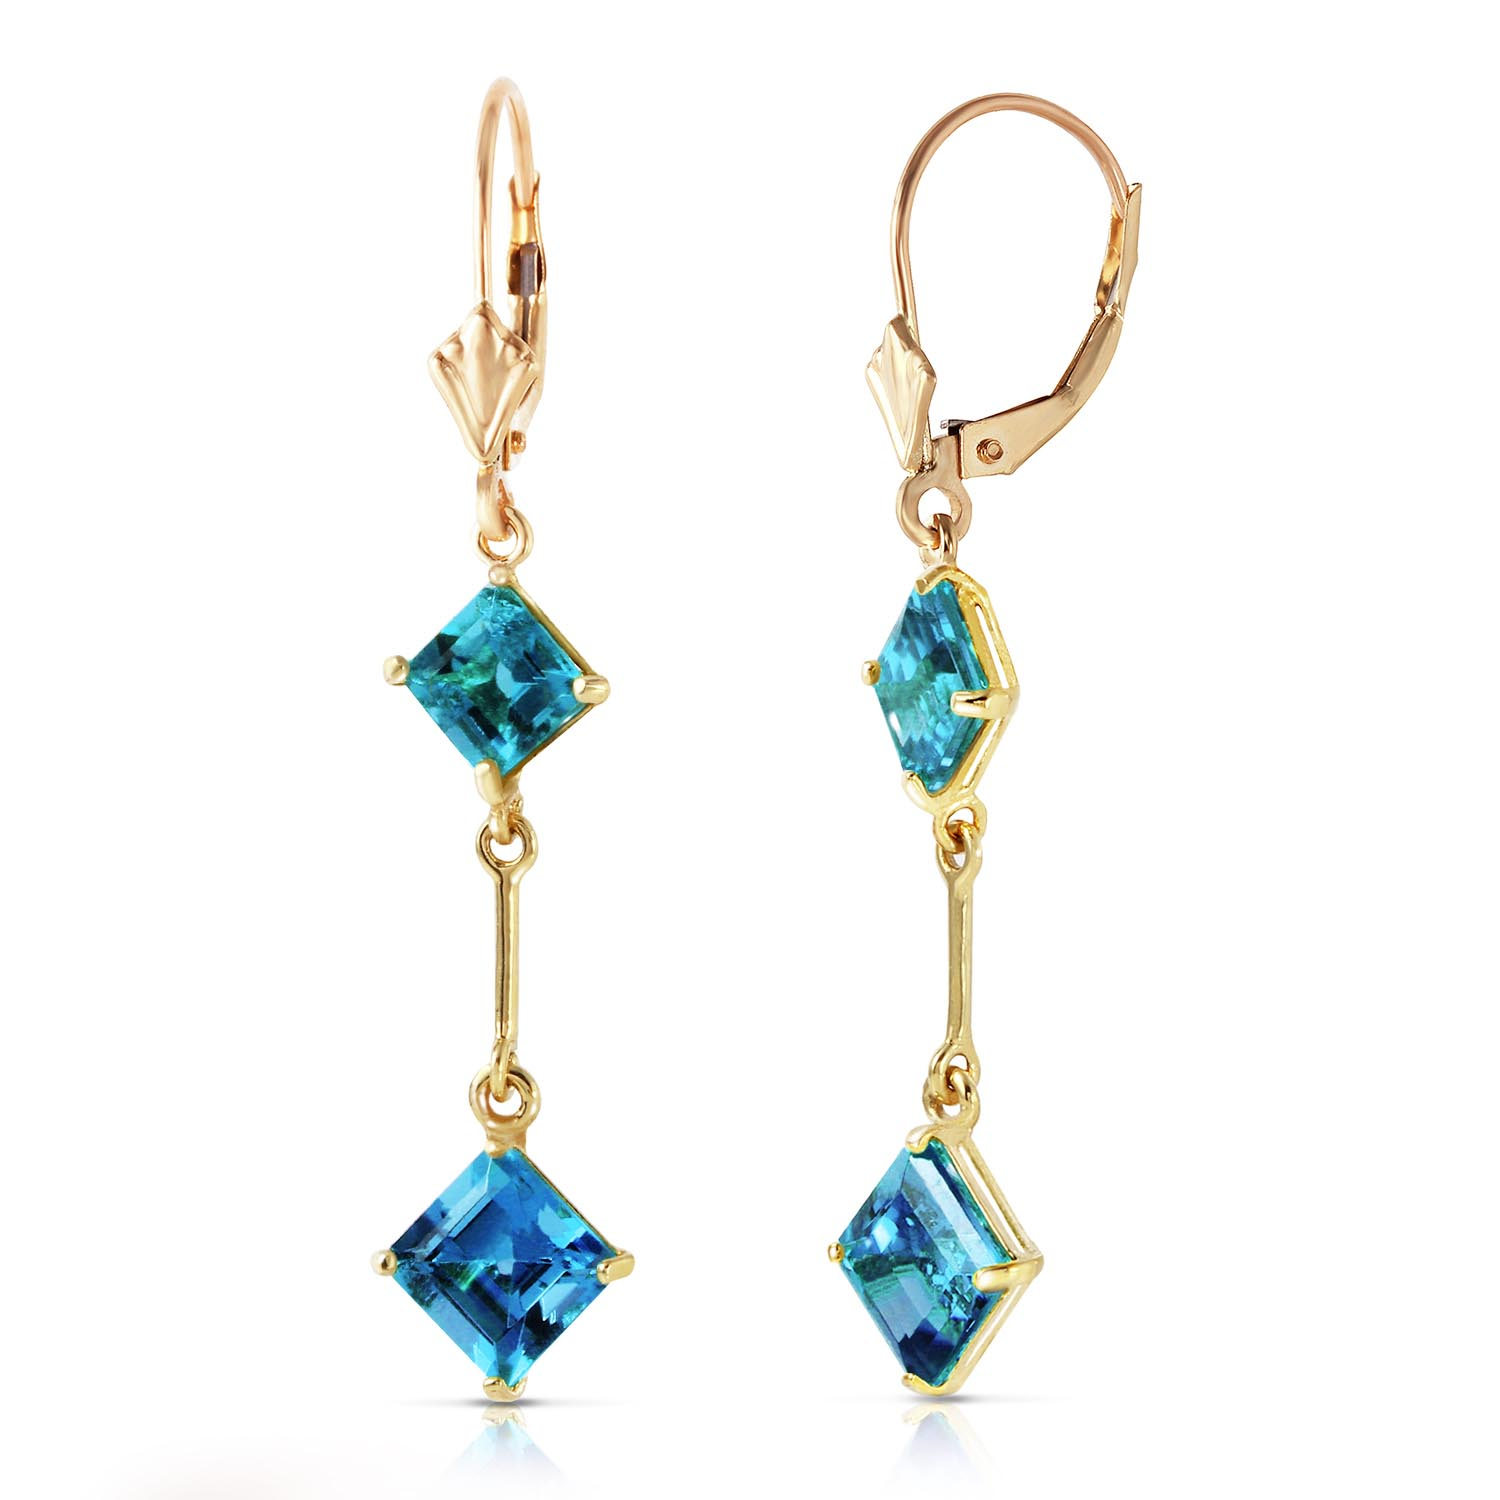 Blue Topaz Two Tier Drop Earrings 3.75ctw in 9ct Gold